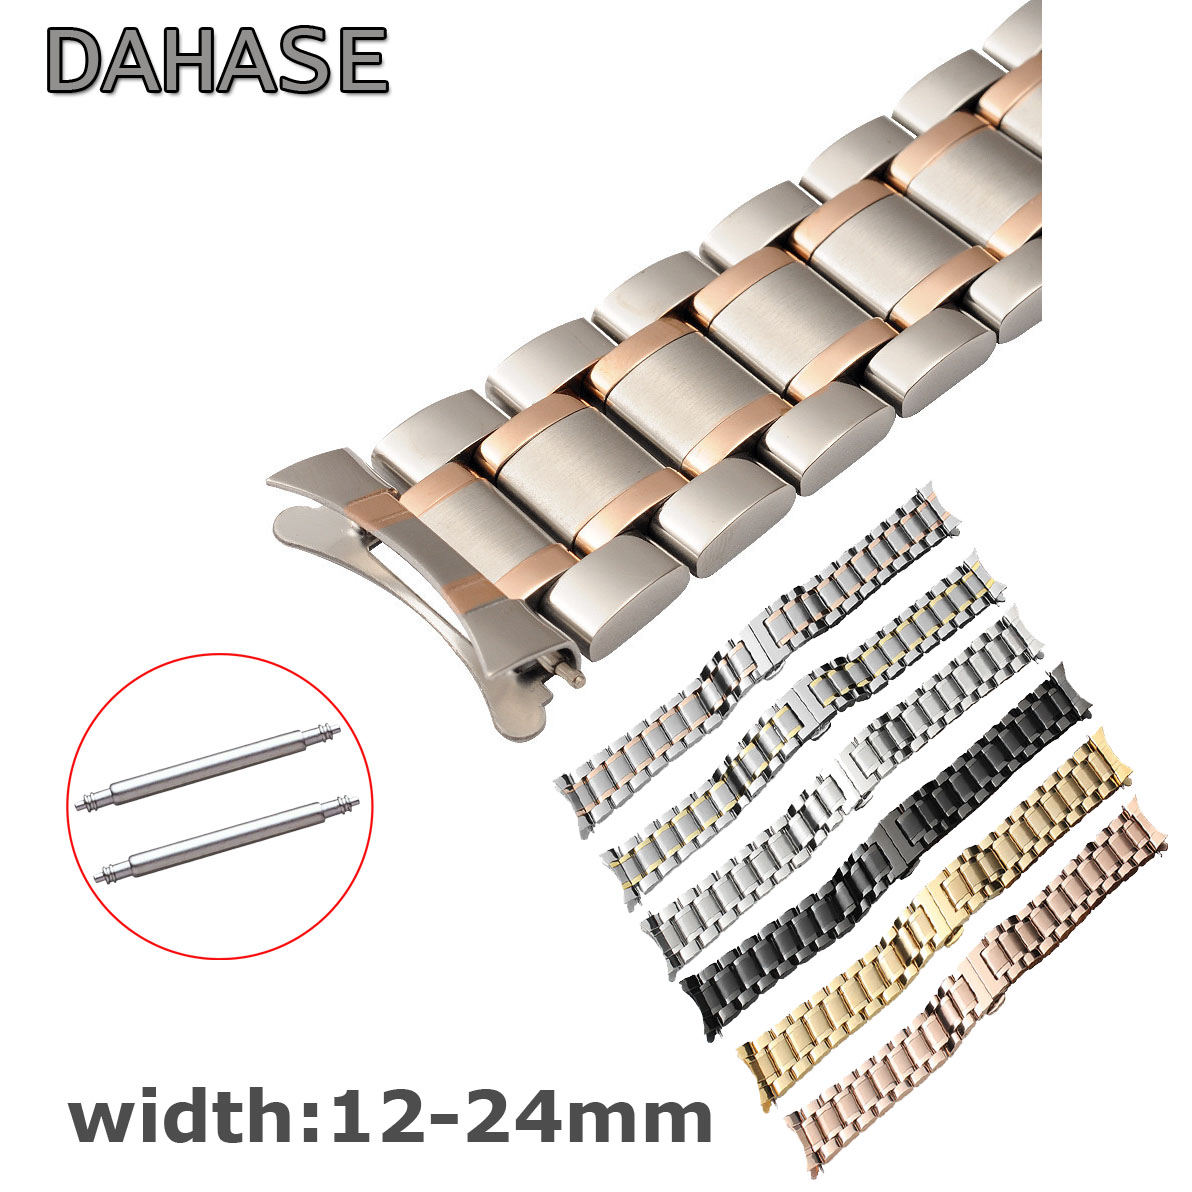 Stainless Steel Watch Band 12 14 15 16 17 18 19 20 21 22mm 23mm 24mm Curved End Watch Strap Butterfly Buckle Replacement Strap